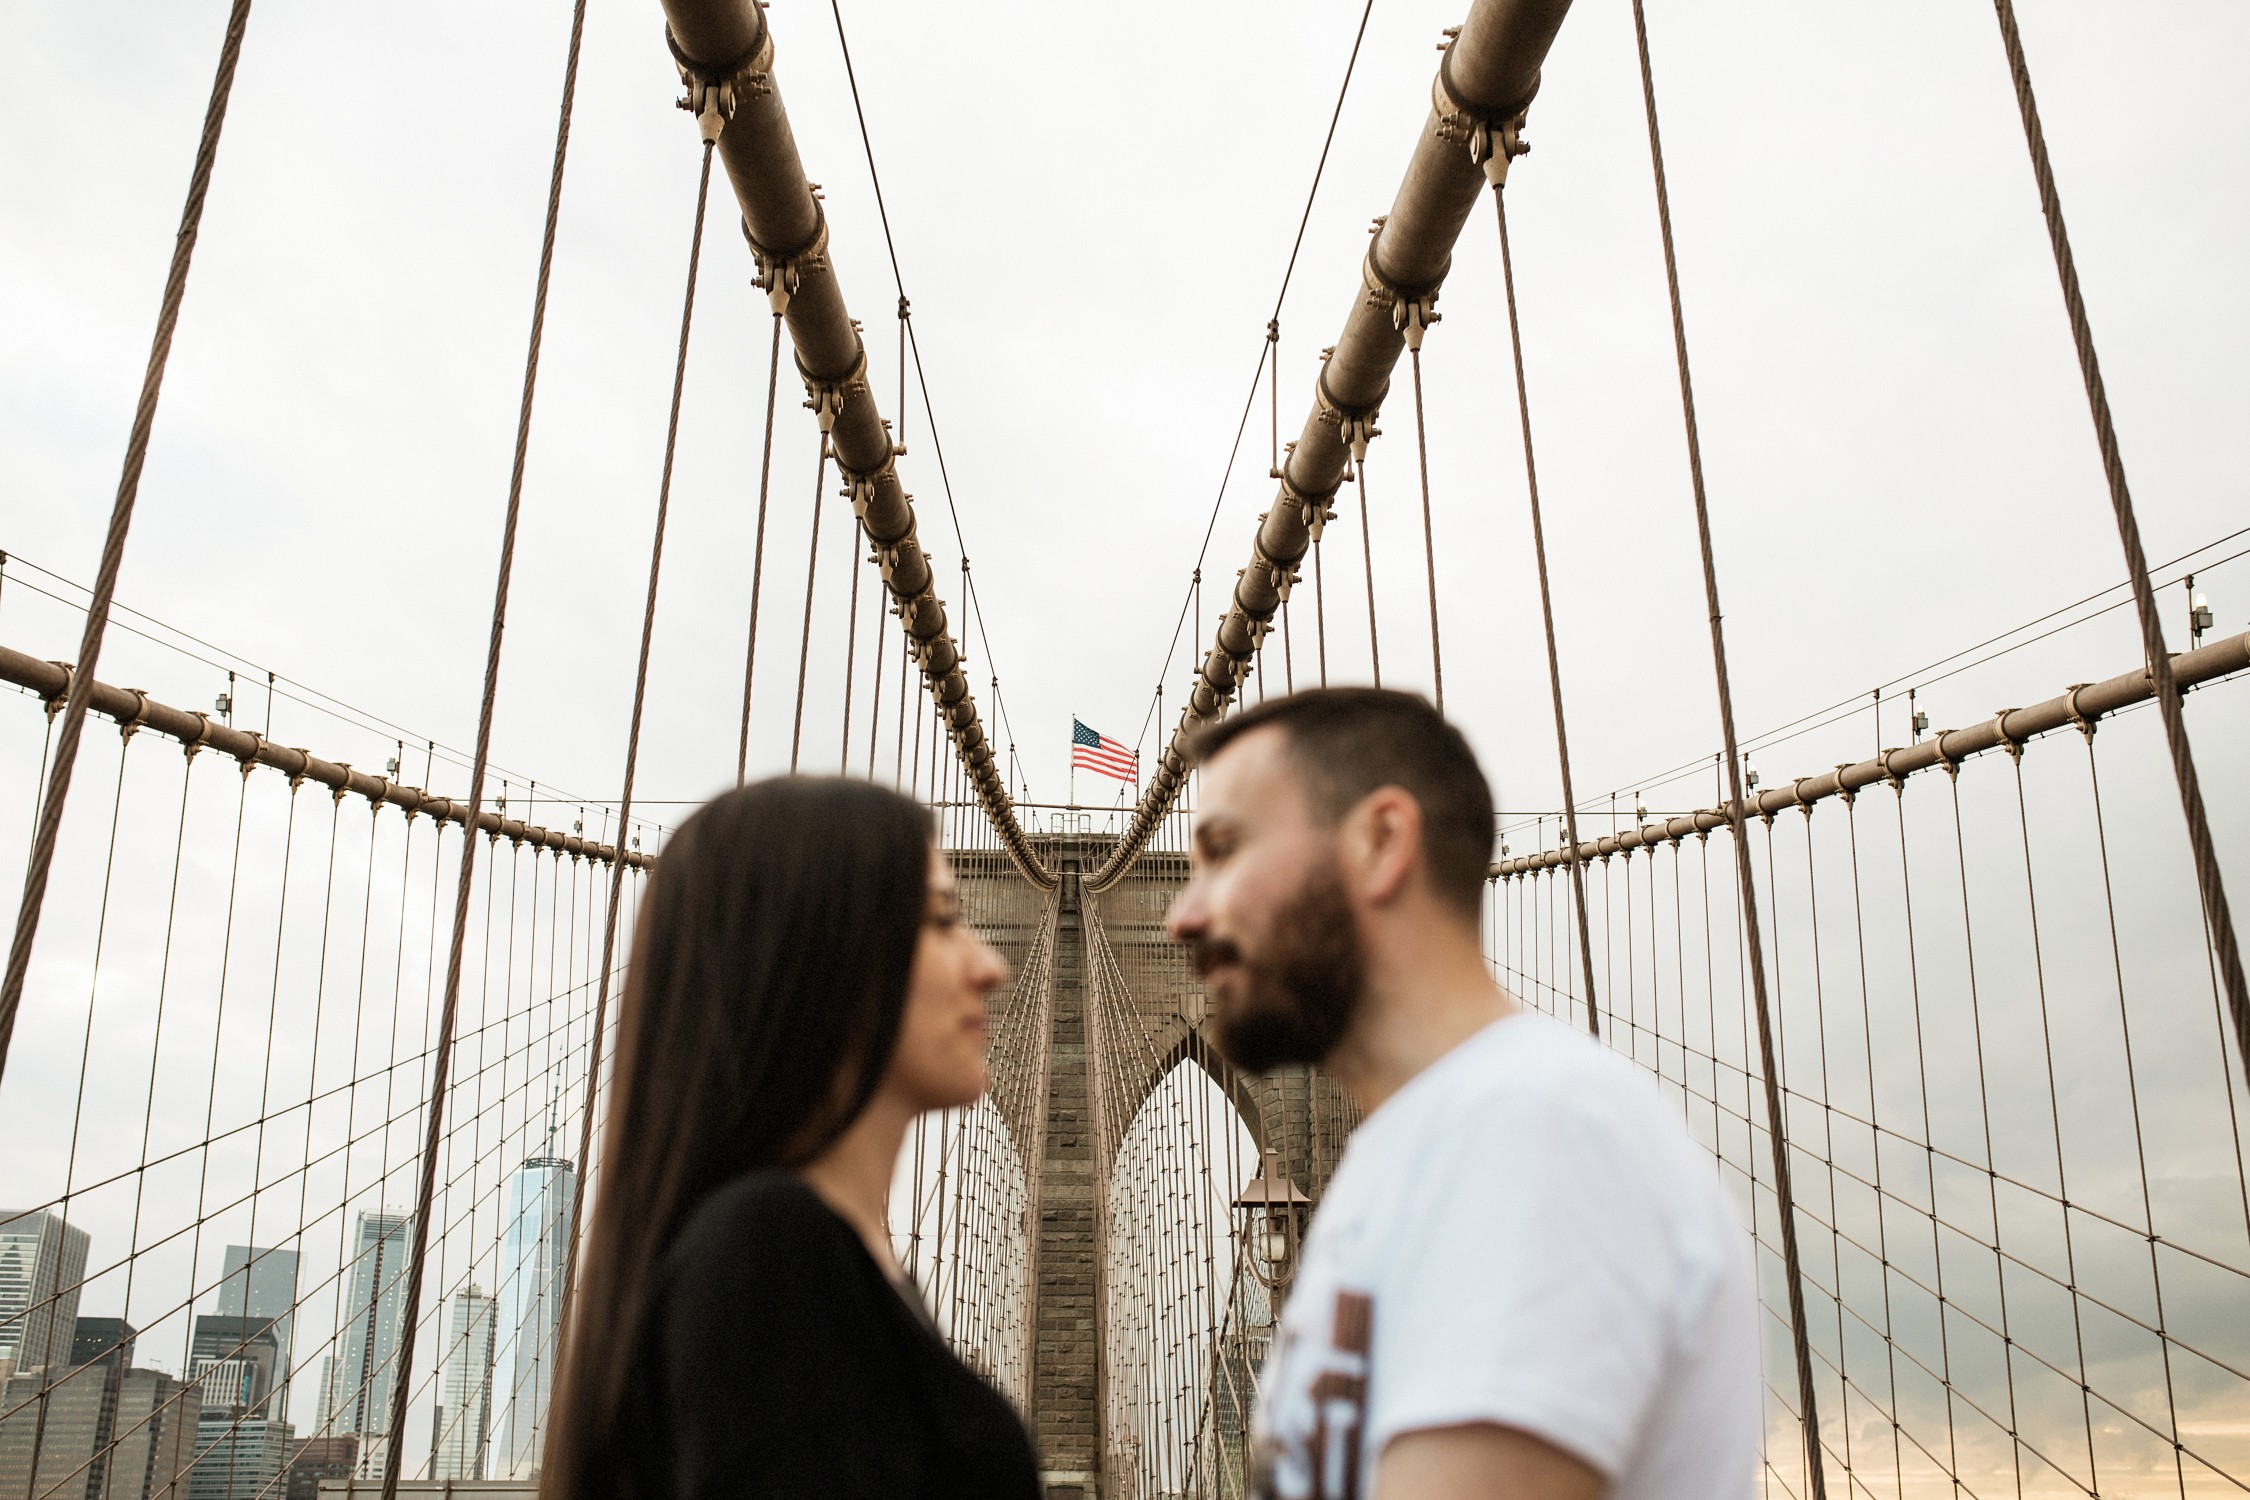 Engagement Photos in DUMBO - Couple facing each other the Brooklyn Bridge